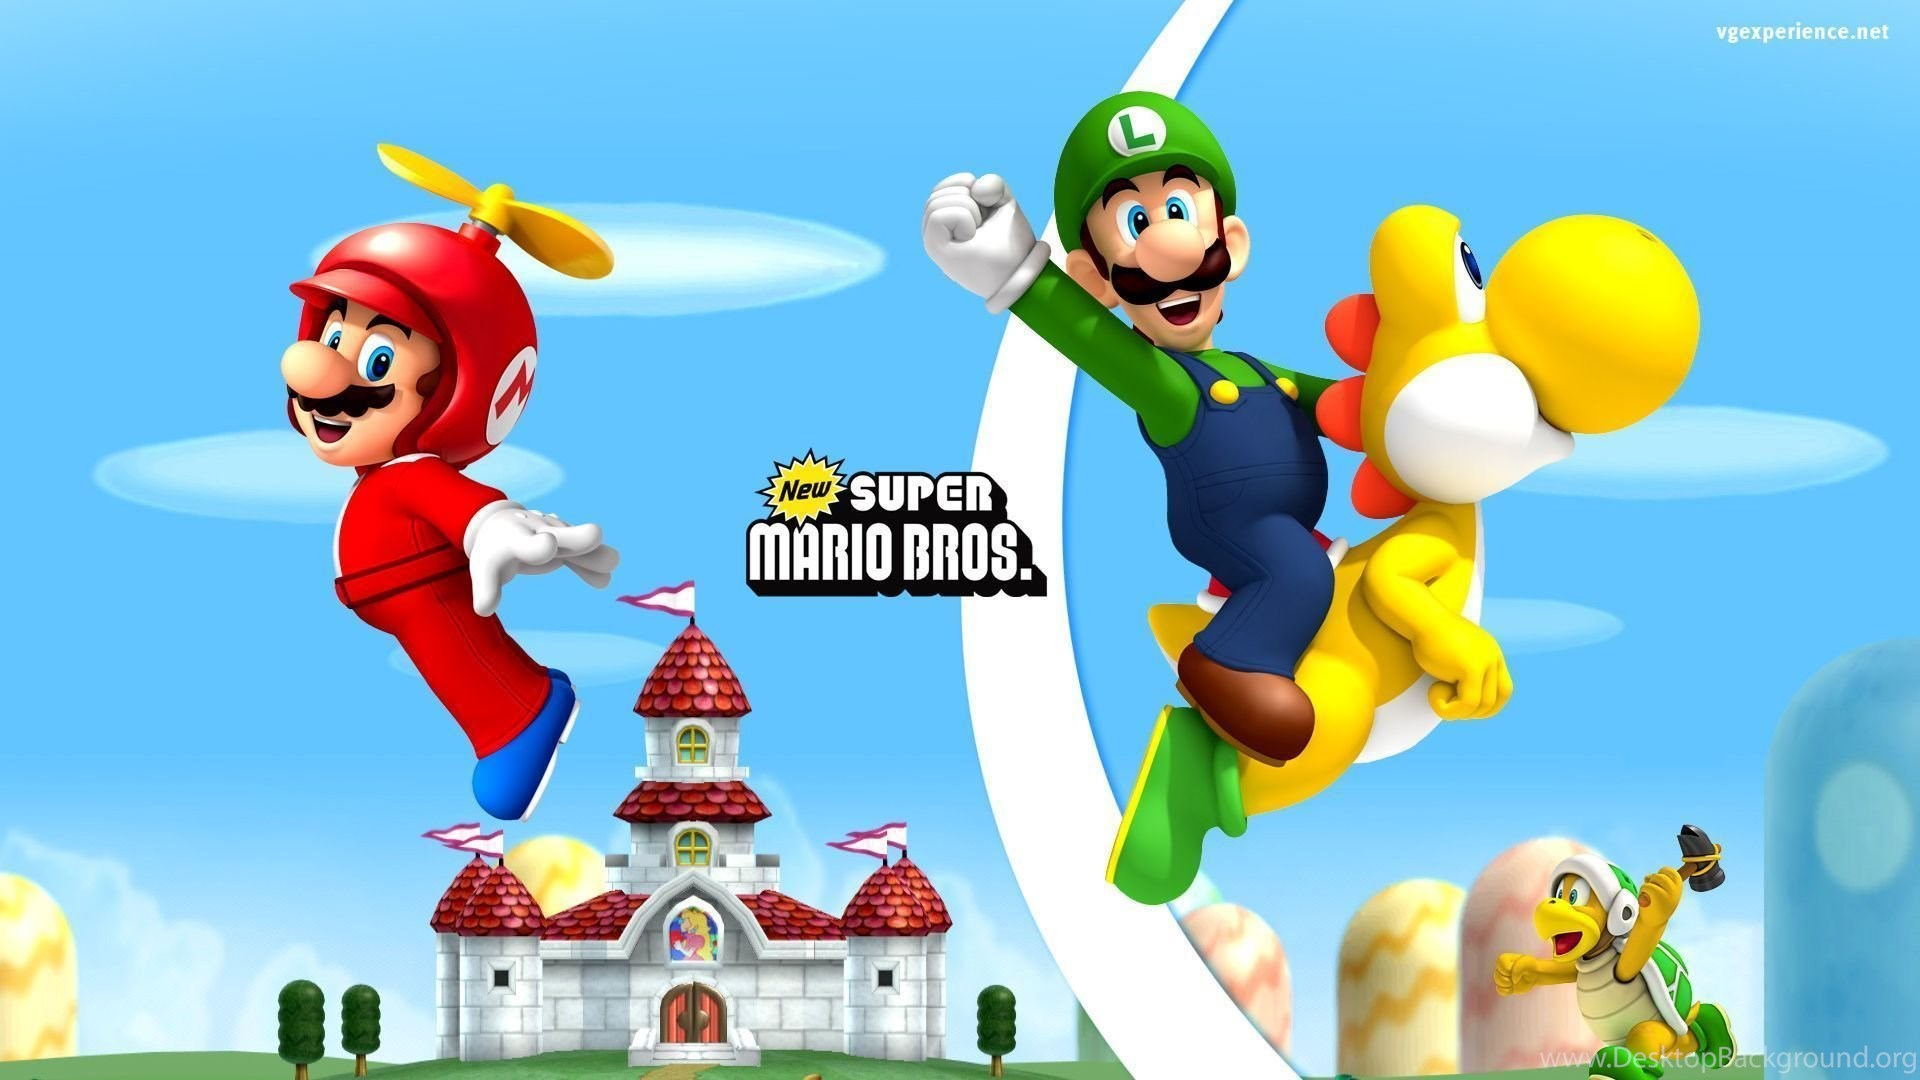 Hd Quality New Super Mario Bros Wallpapers Hd 5 Siwallpapers 7828